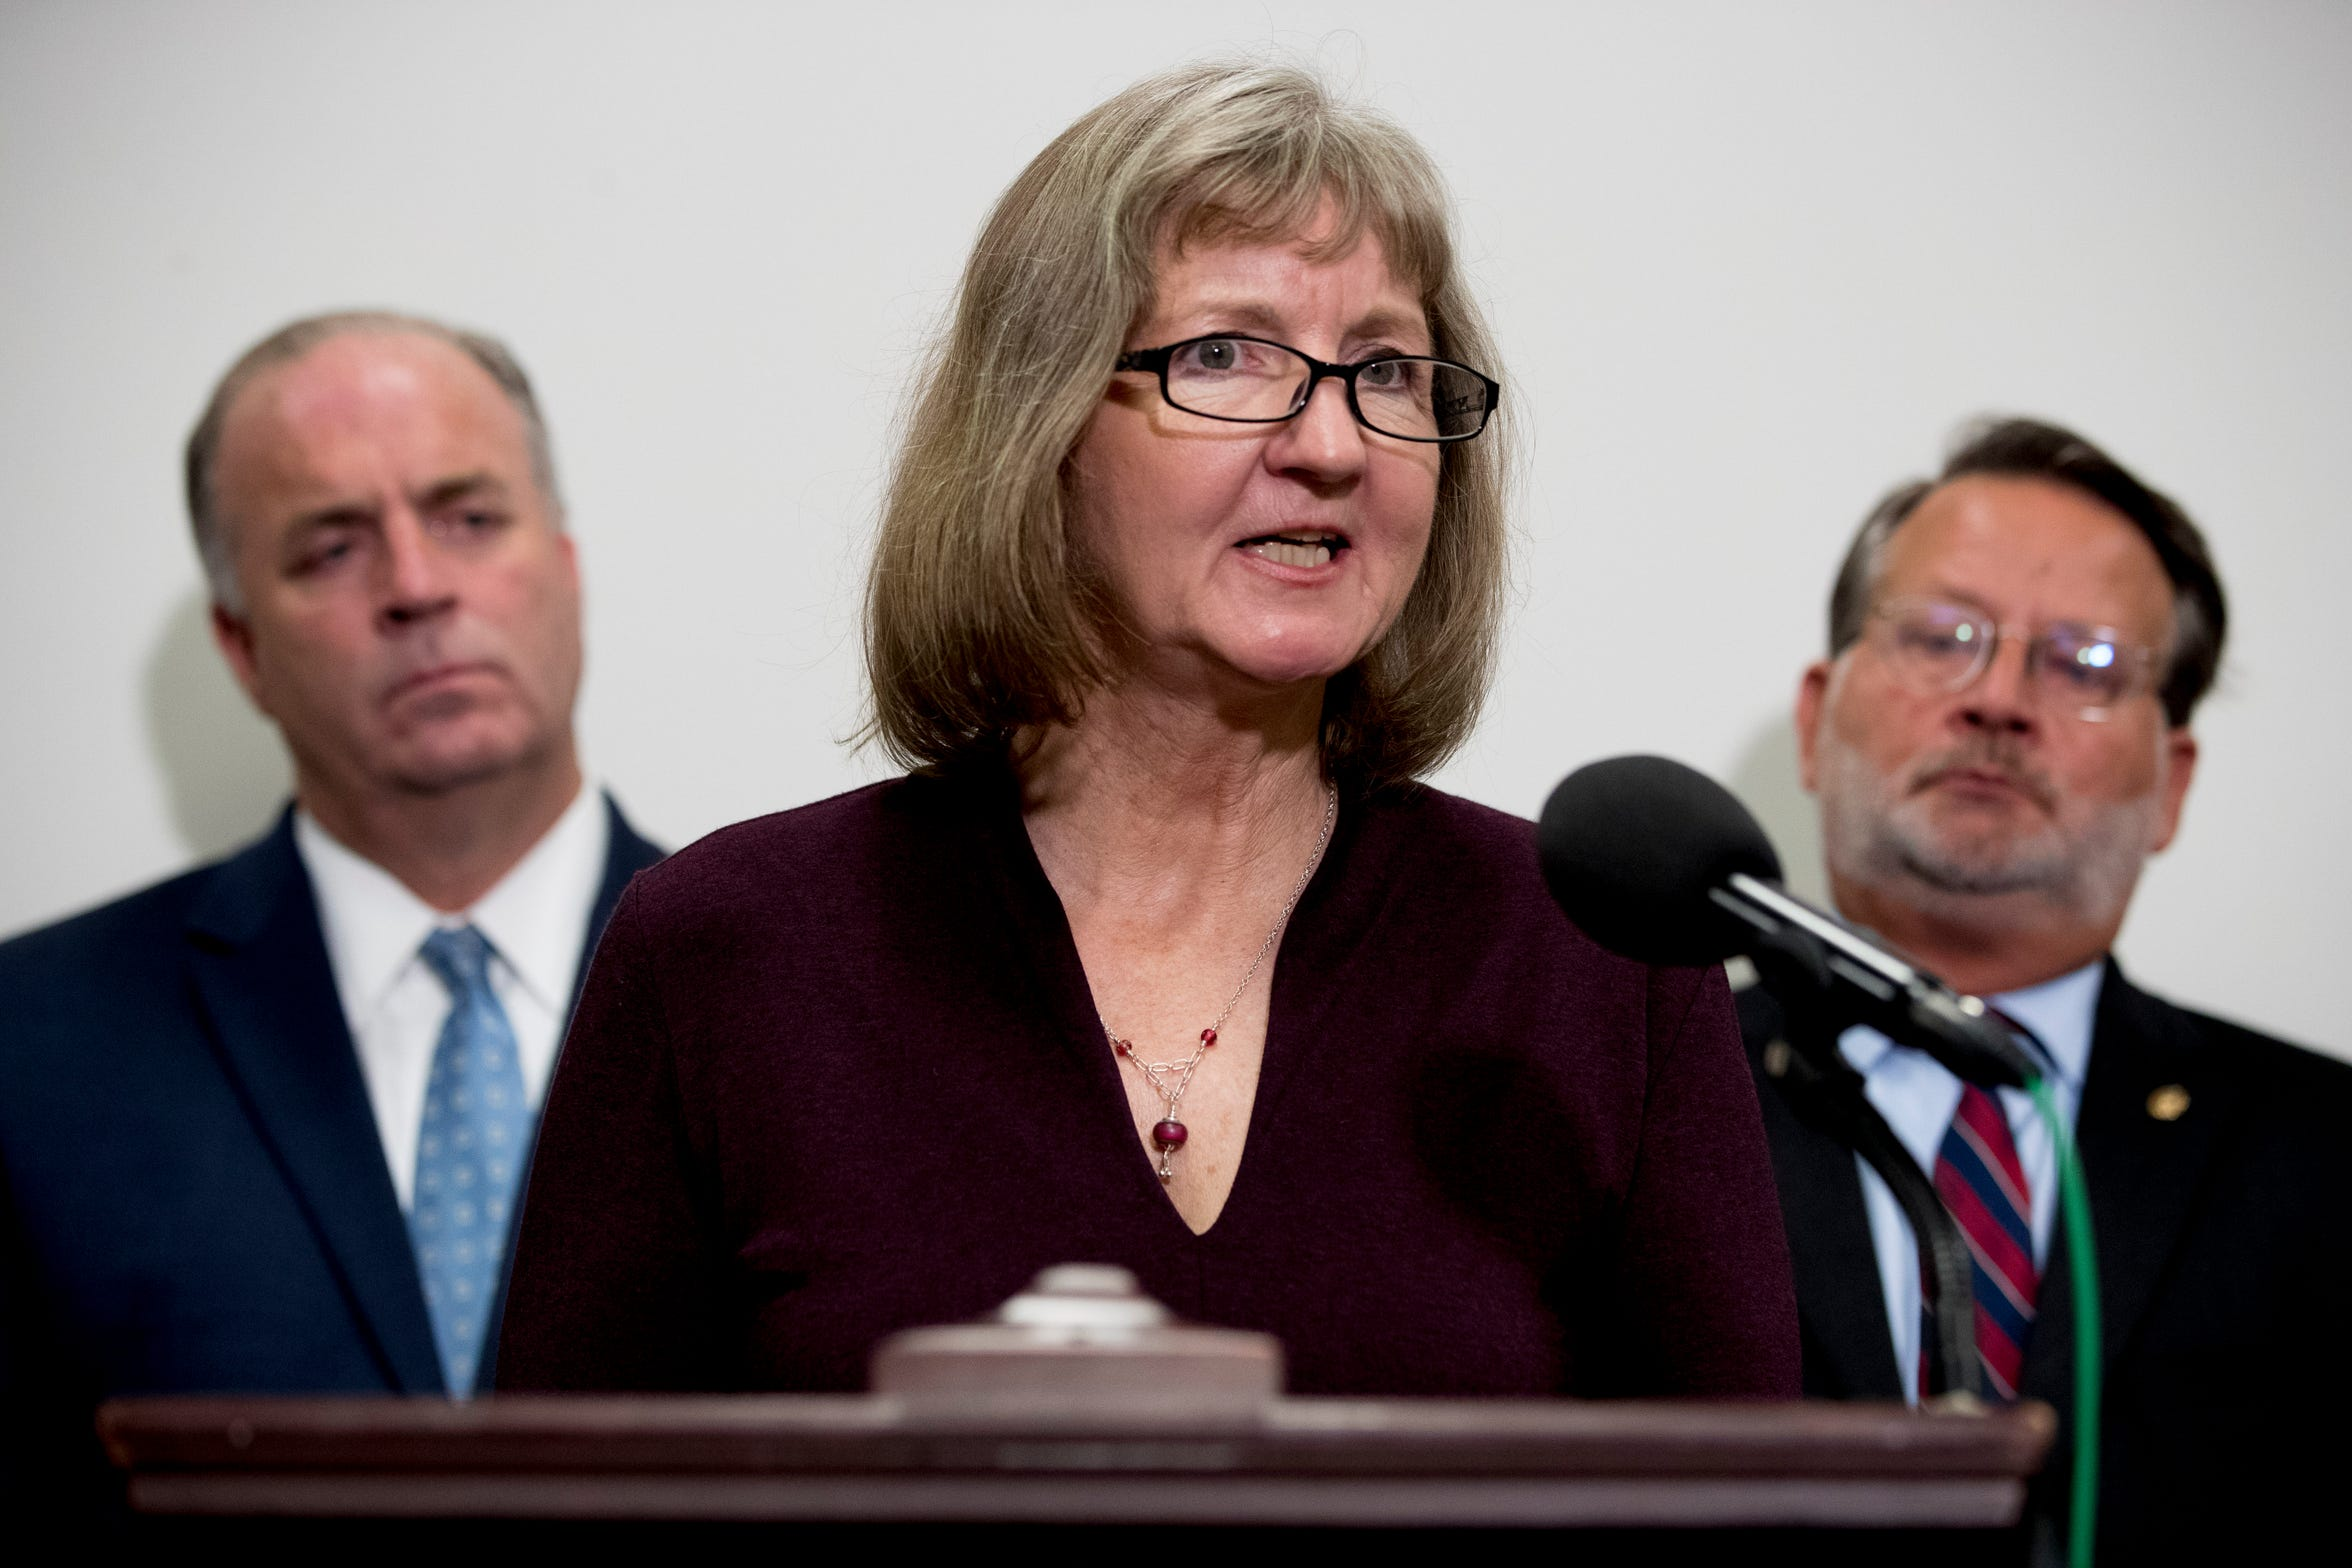 Elizabeth Whelan, the sister of Paul Whelan, accompanied by Rep. Dan Kildee, left, and Sen. Gary Peters, speaks at a news conference on Capitol Hill in September to call on Congress to pass a resolution condemning the Russian government for detaining her brother.